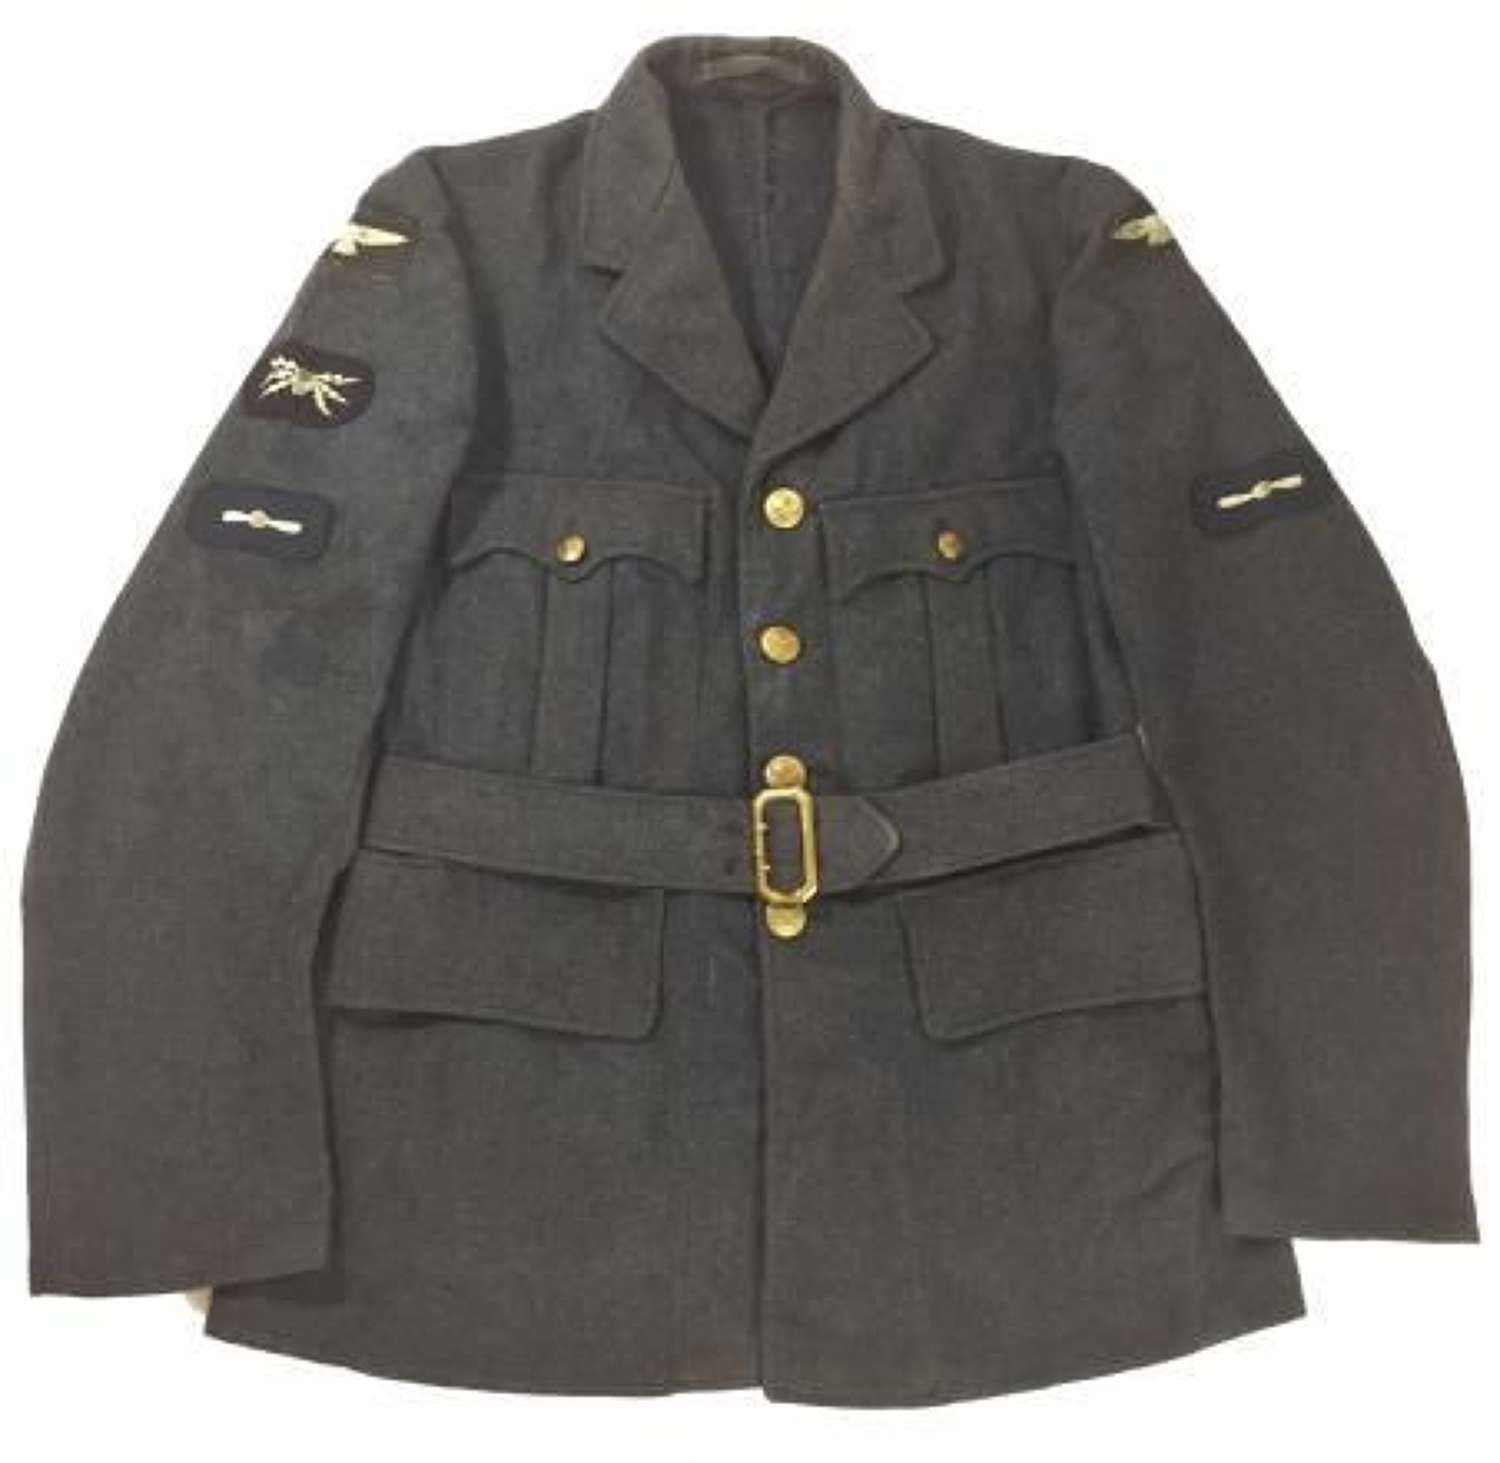 1943 Dated RAF OA Tunic - Size No. 9